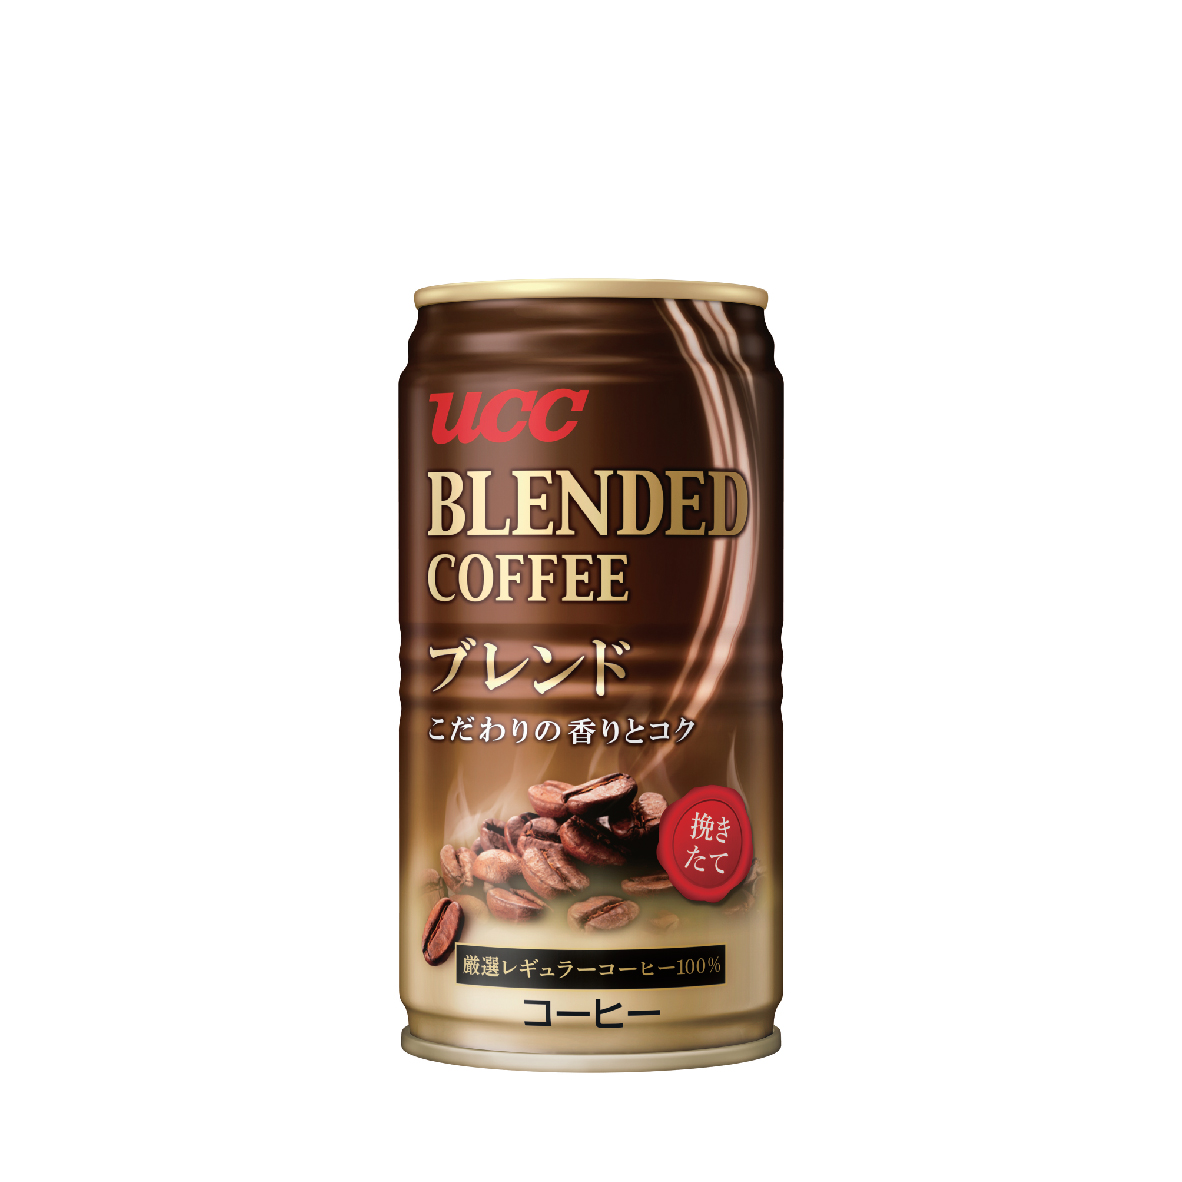 UCC Blended Coffee